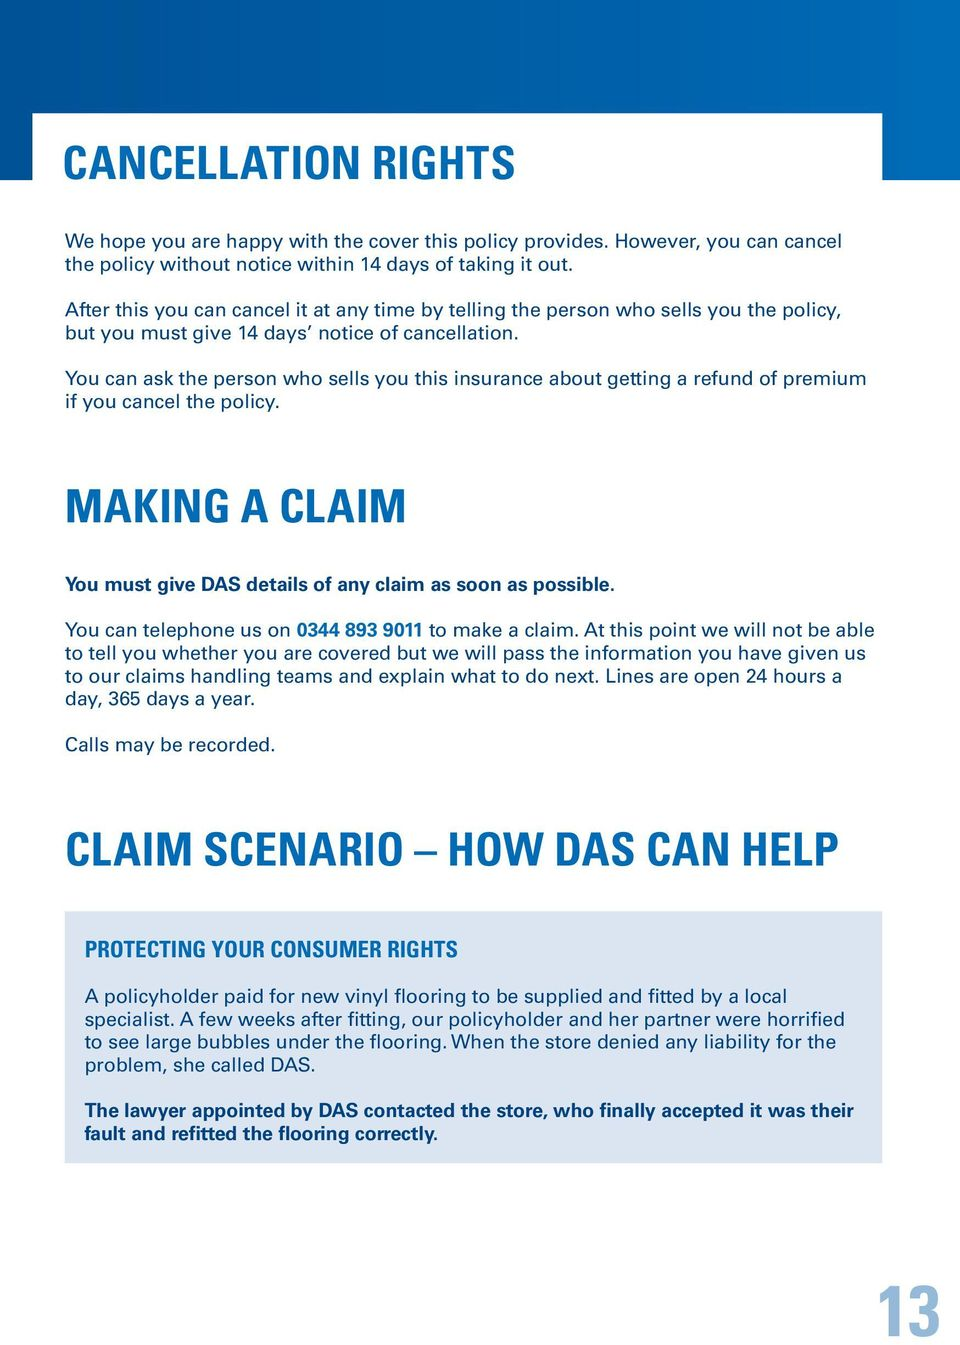 You can ask the person who sells you this insurance about getting a refund of premium if you cancel the policy. MAKING A CLAIM You must give DAS details of any claim as soon as possible.